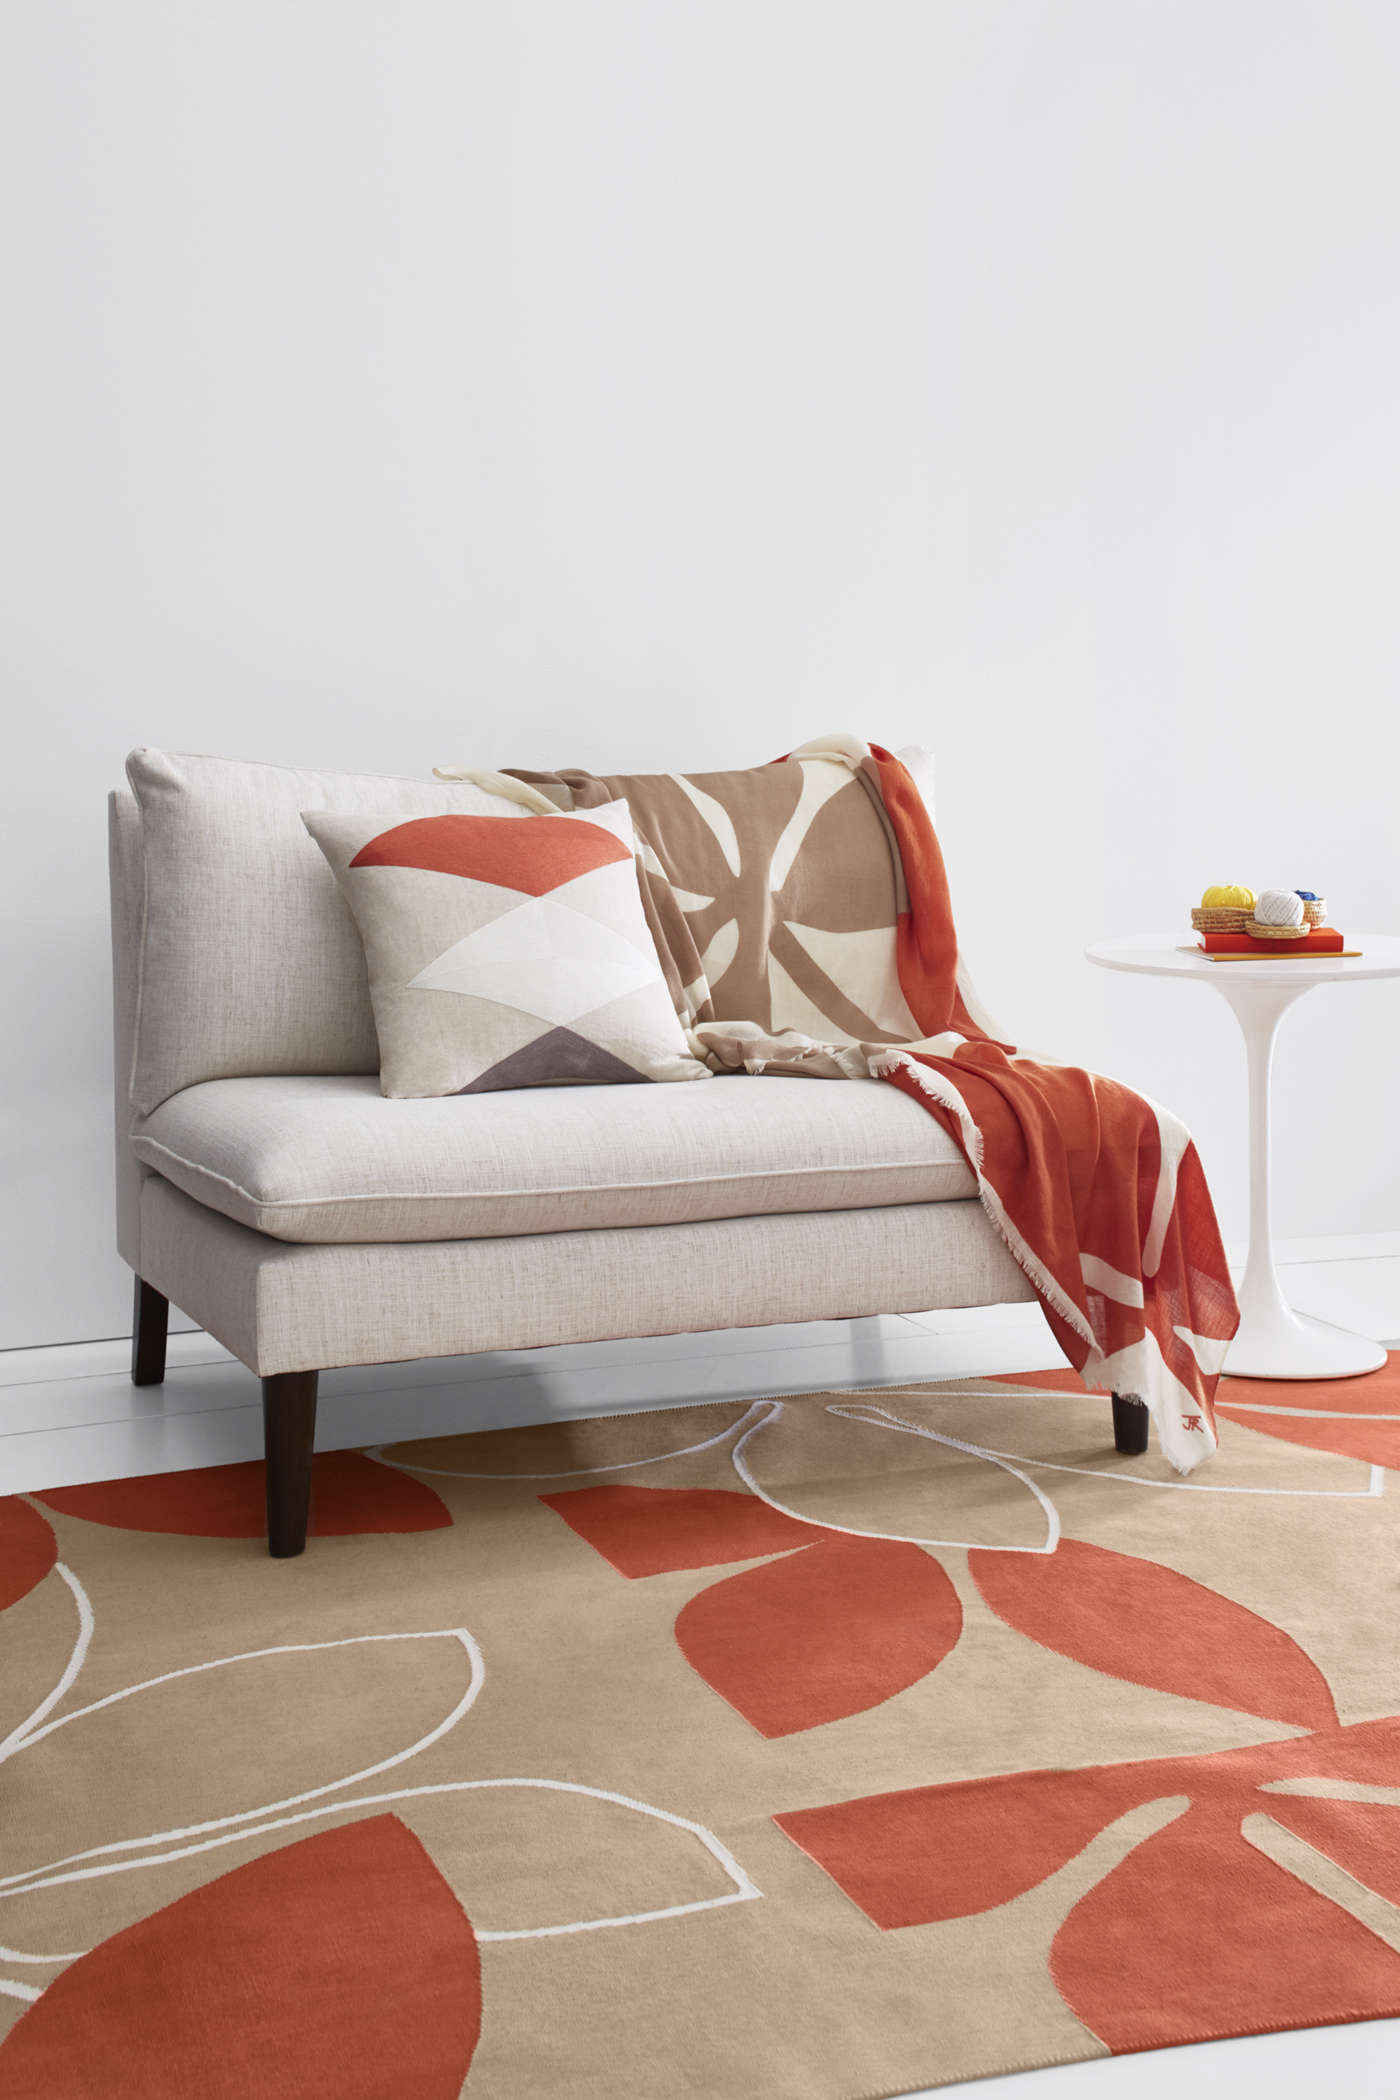 Is Valued At Up To 820 It Includes A Brushstroke Matelass Coverlet 228 For King Two Shams 68 Each Supima Percale Bedding